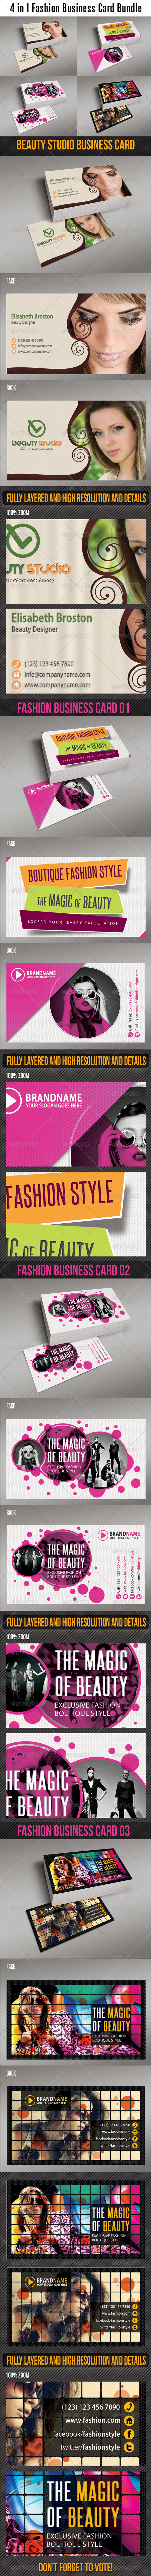 4 in 1 Fashion Business Card Bundle - Creative Business Cards